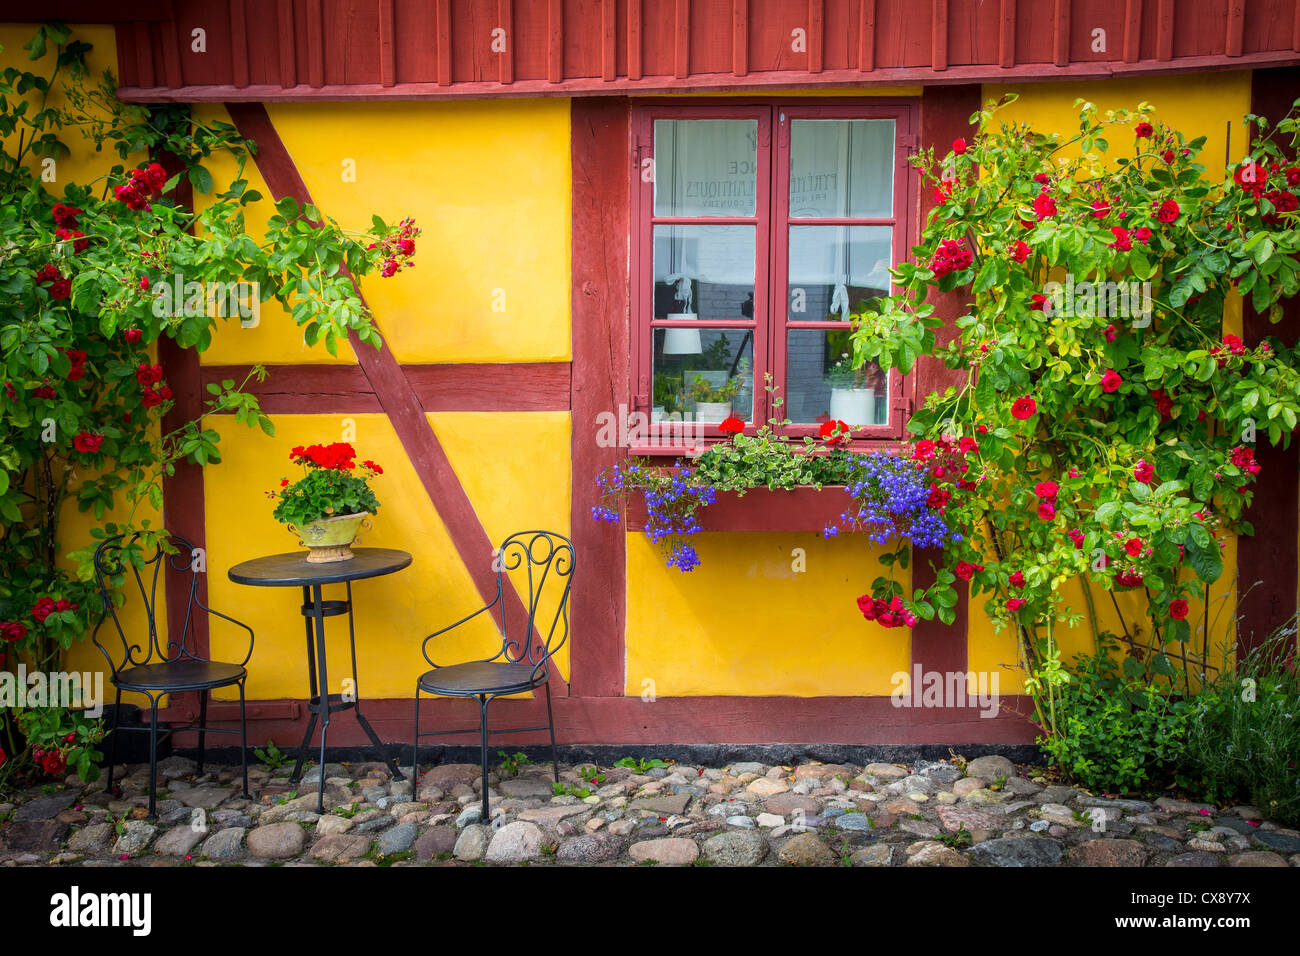 Traditional building typical of the southern province of Skåne in Sweden - Stock Image